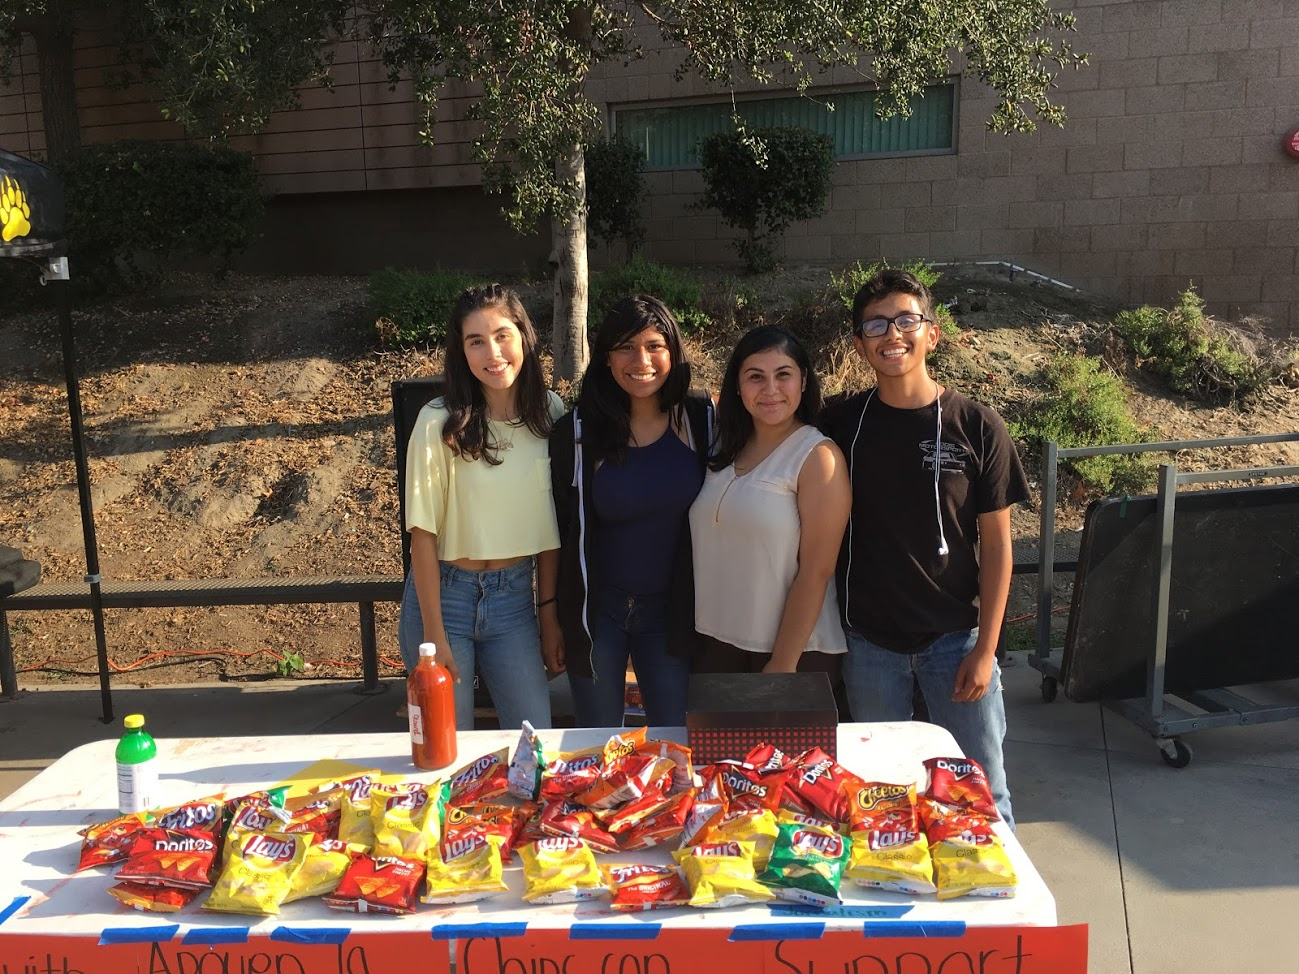 Journalism class of 2017-18 selling a variety of chips while they pose for a picture after a long day of sales.